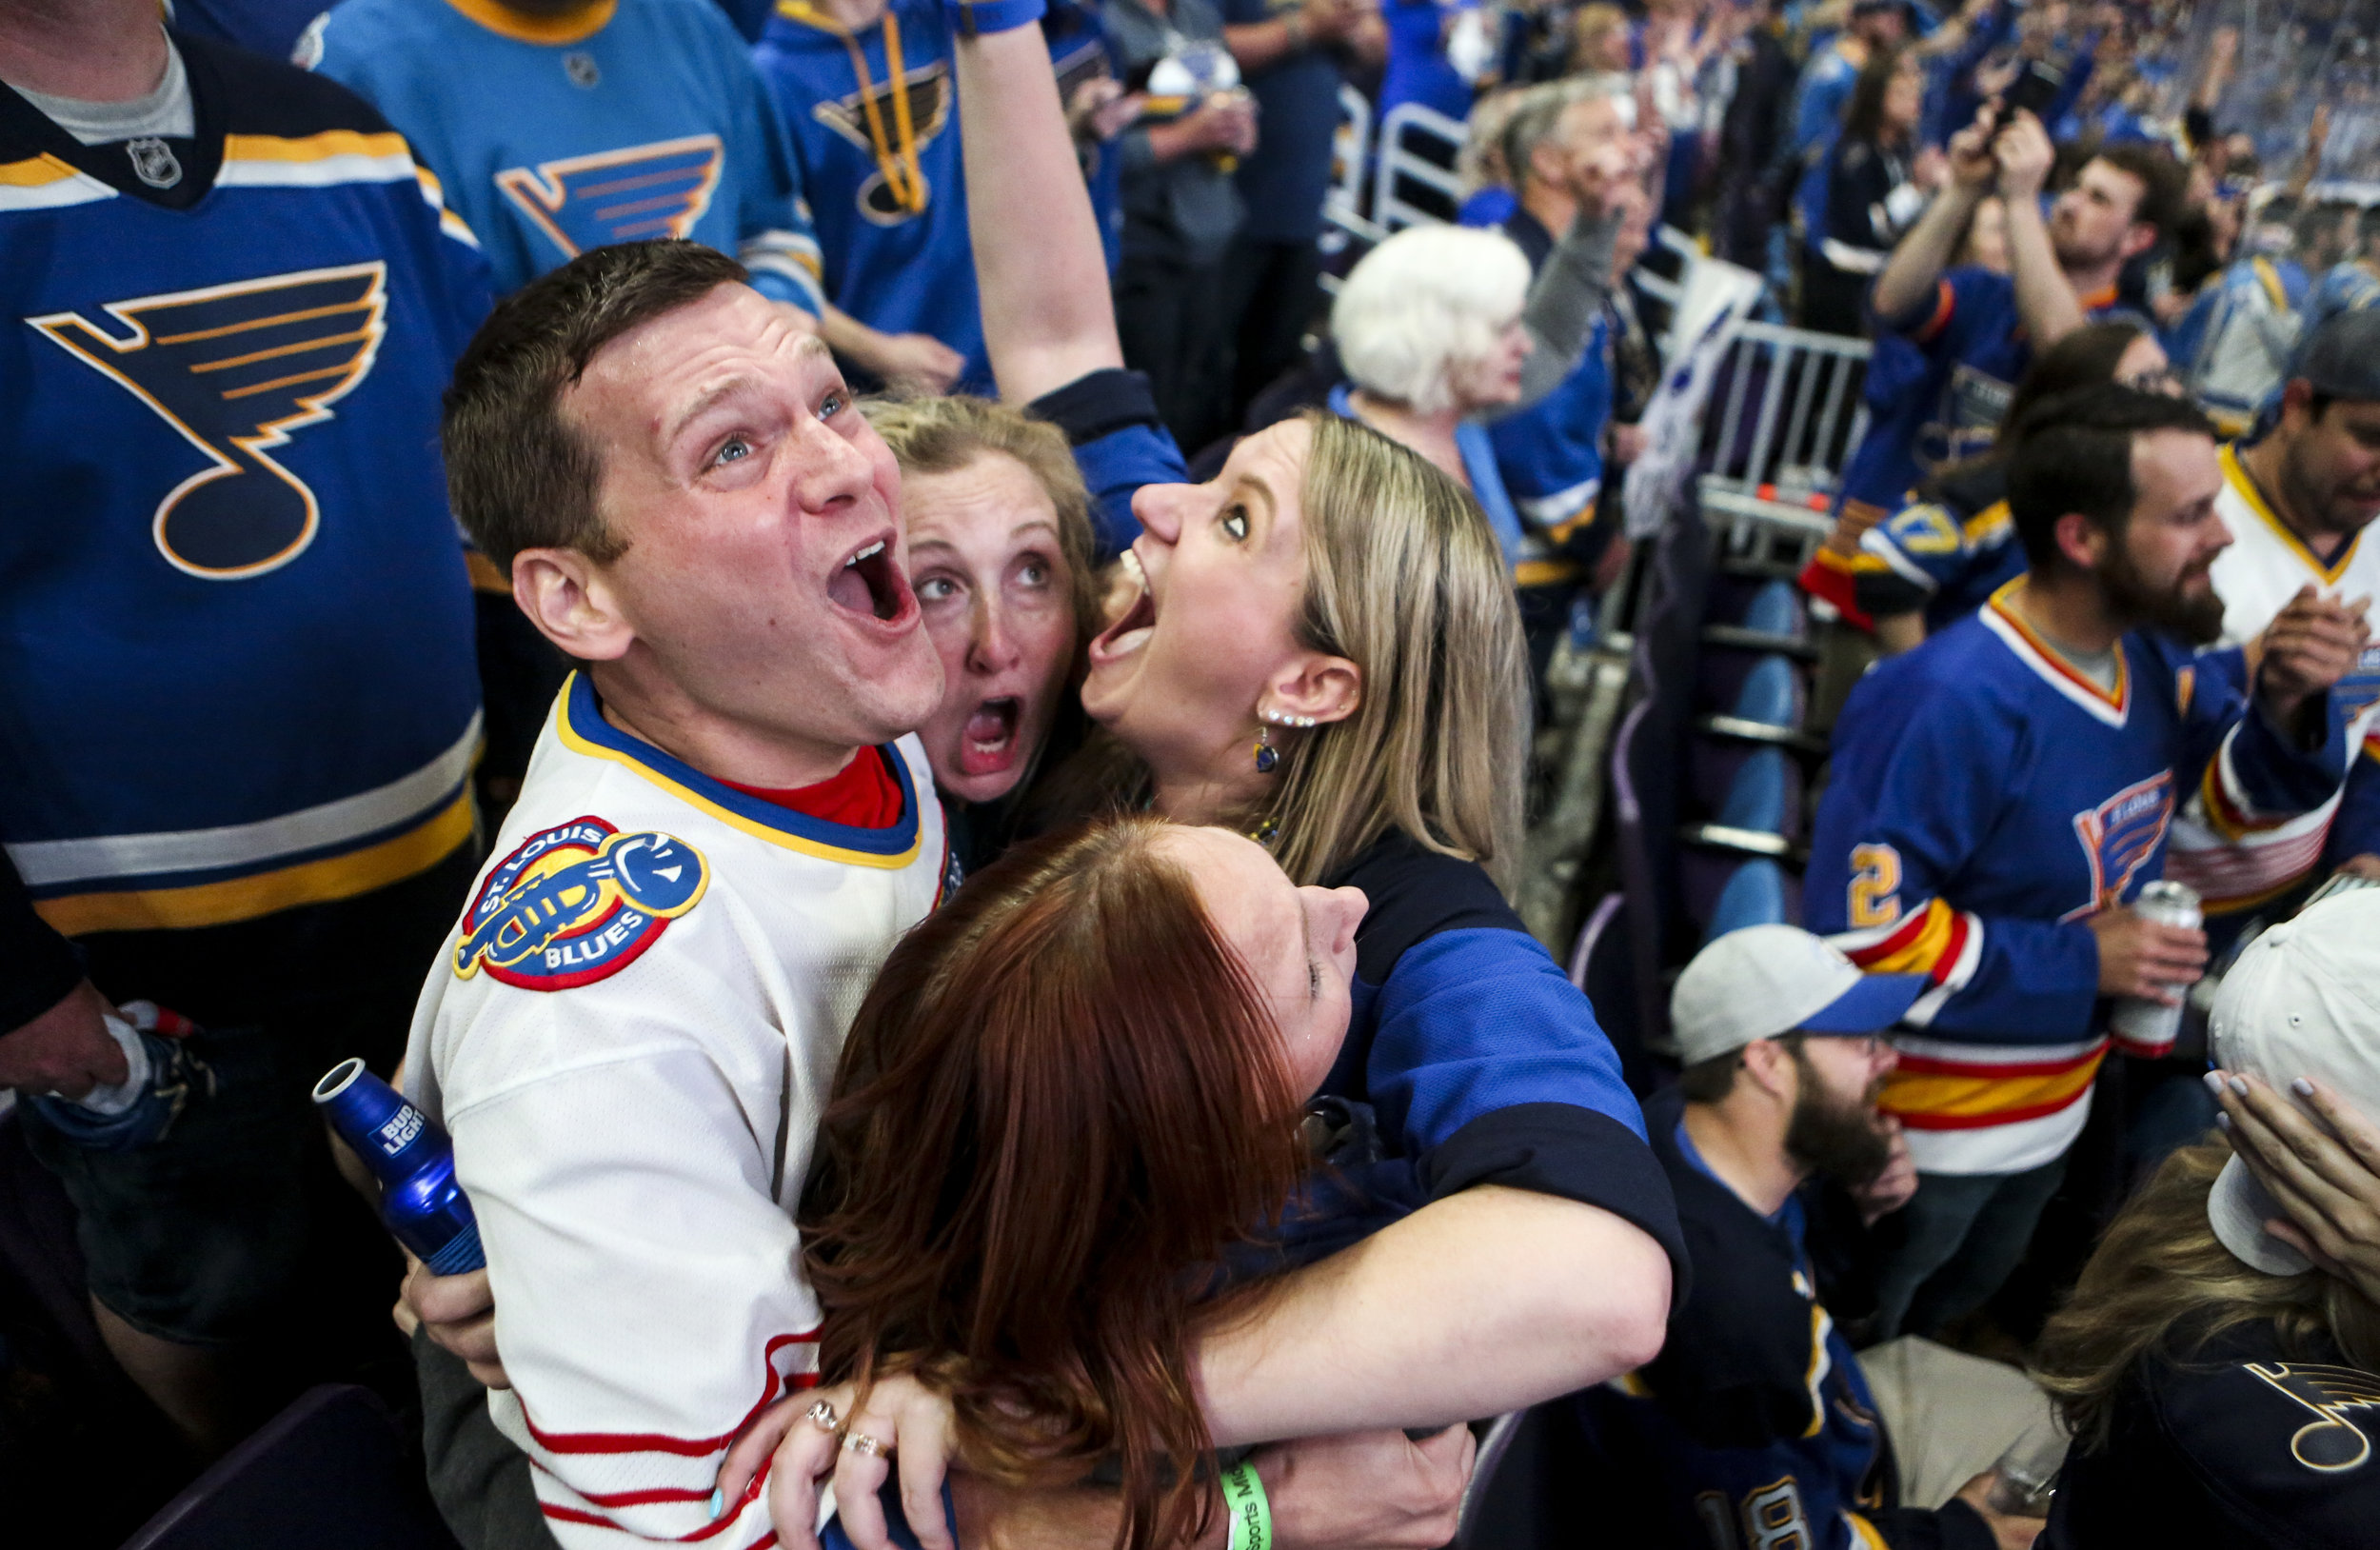 Bill Kess, left, and his friends react as the clock hits zero and the Blues win the Stanley Cup during the Stanley Cup Final Game 7 watch party on Wednesday, June 12, 2019 at the Enterprise Center.